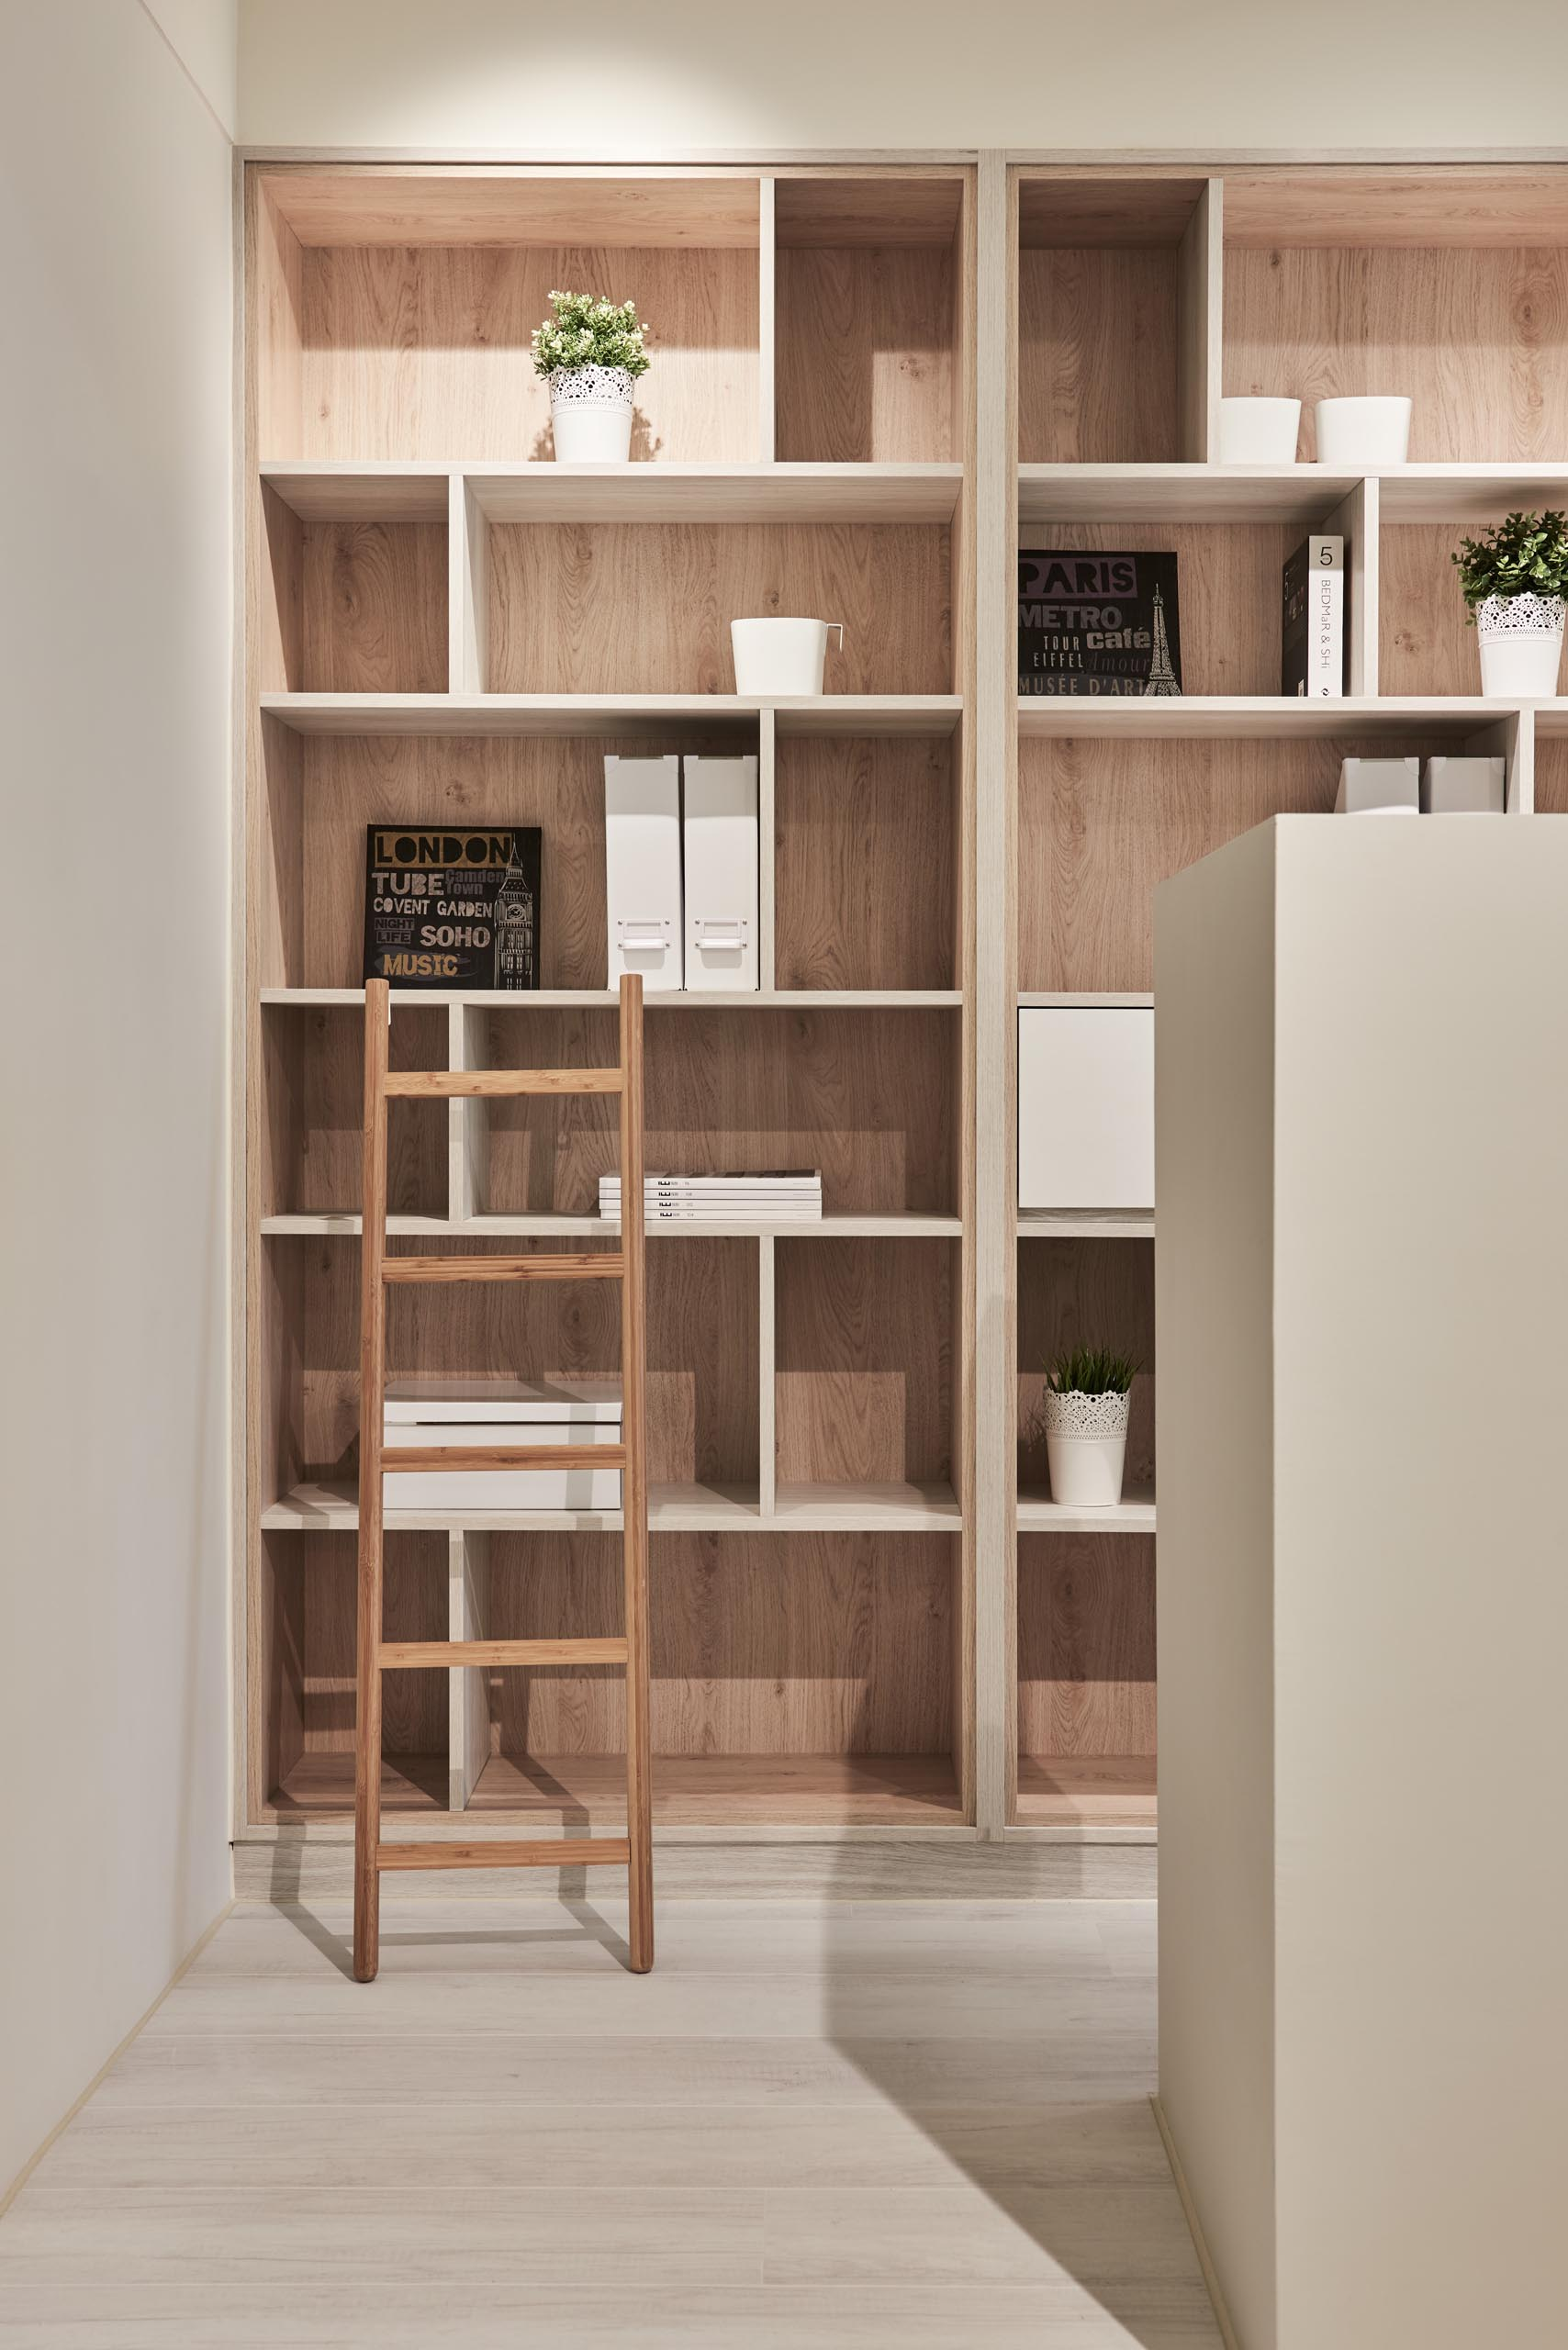 Floor-to-ceiling built-in wood-lined bookshelves provide an abundance of storage for books, folders, plants, and decor items. There's also a small ladder that makes it easy to reach the top shelves.